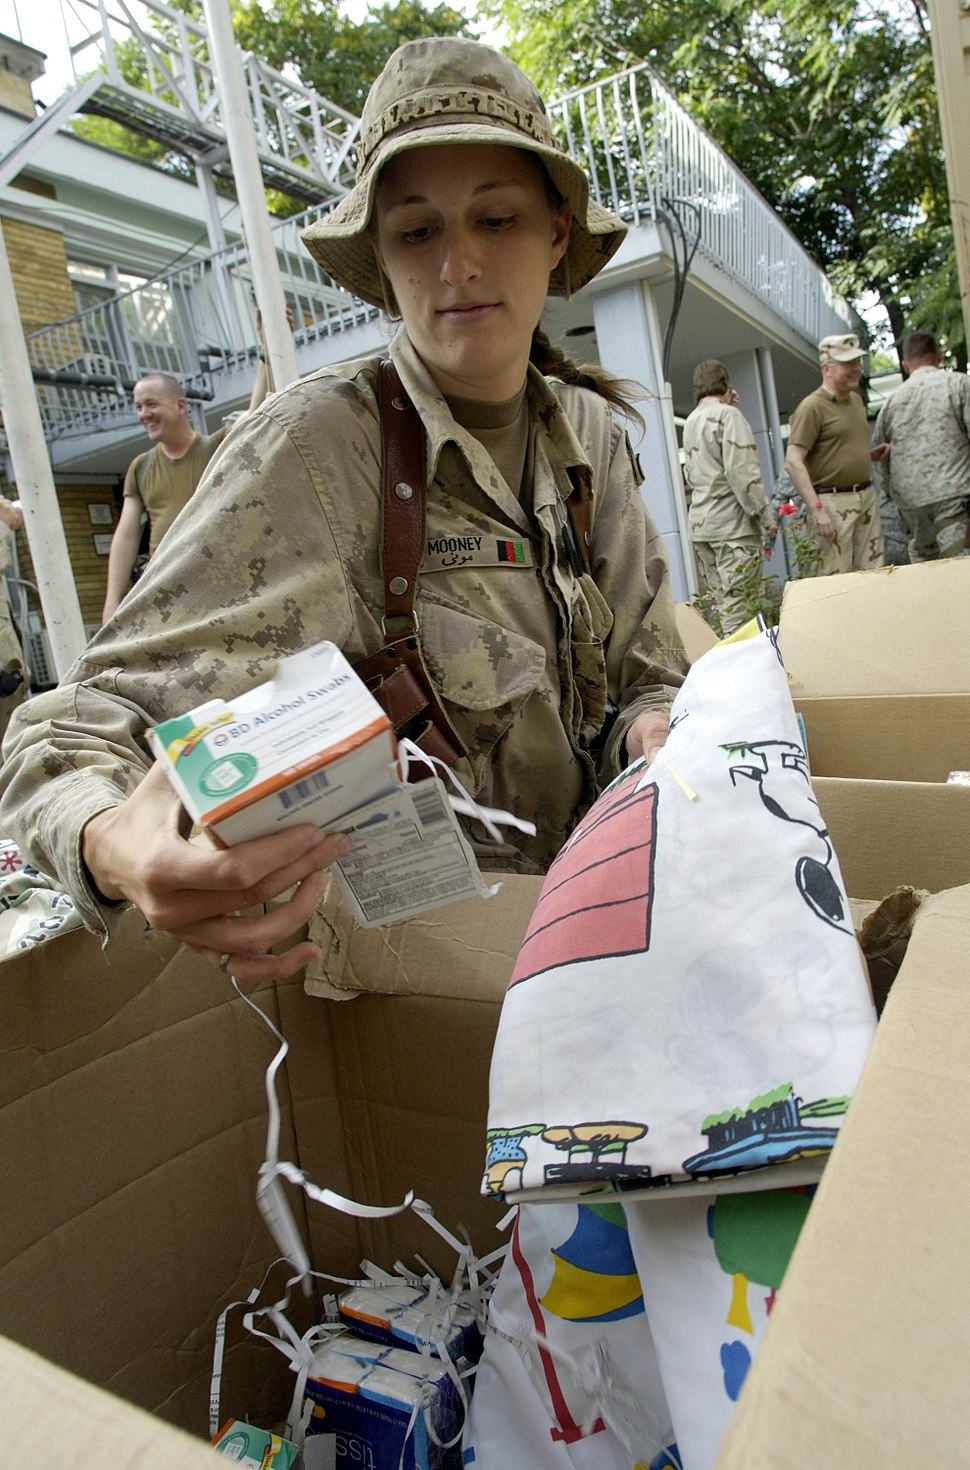 Mooney Aid to Afghanistan